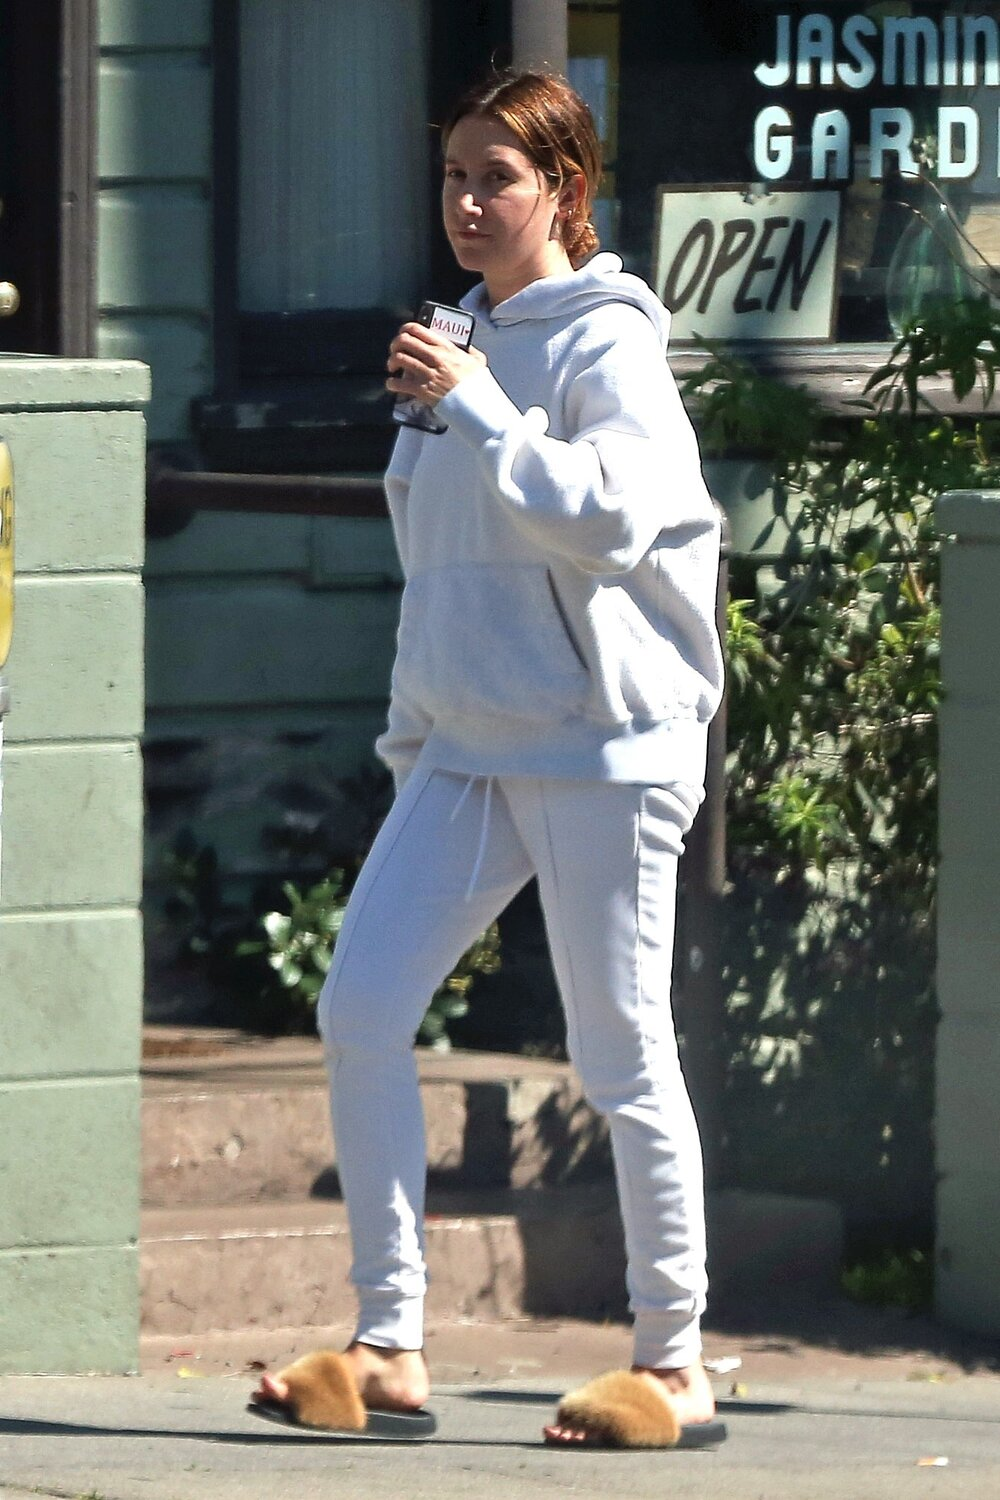 givenchy-white-joggers-los-angeles.jpg